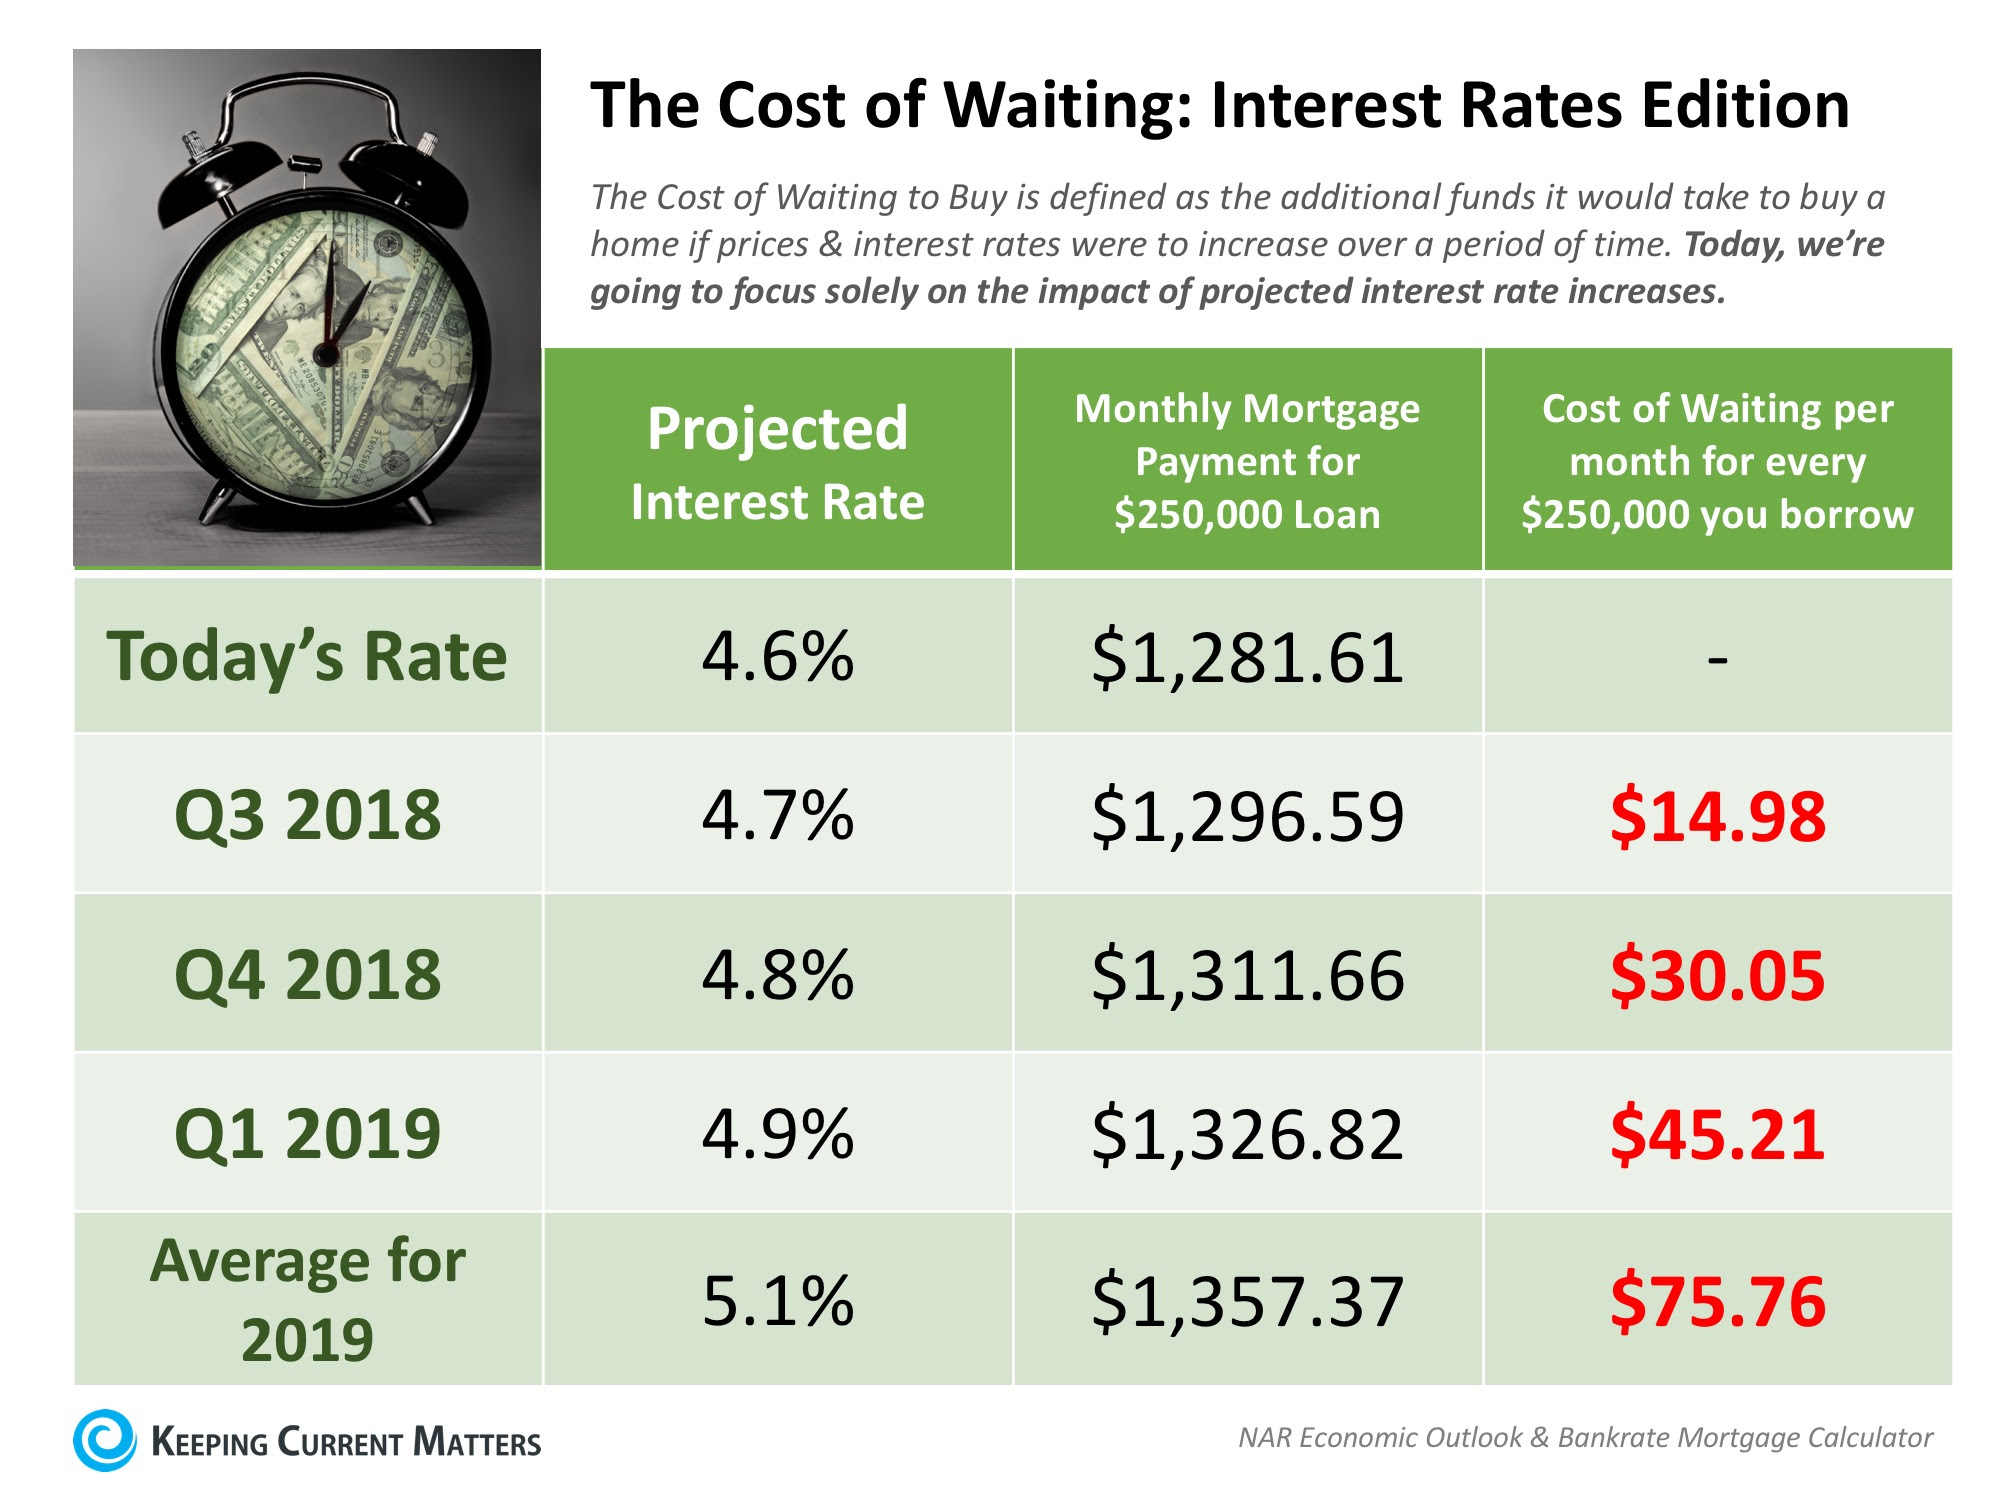 The Cost of Waiting to Buy: Interest Rates Edition